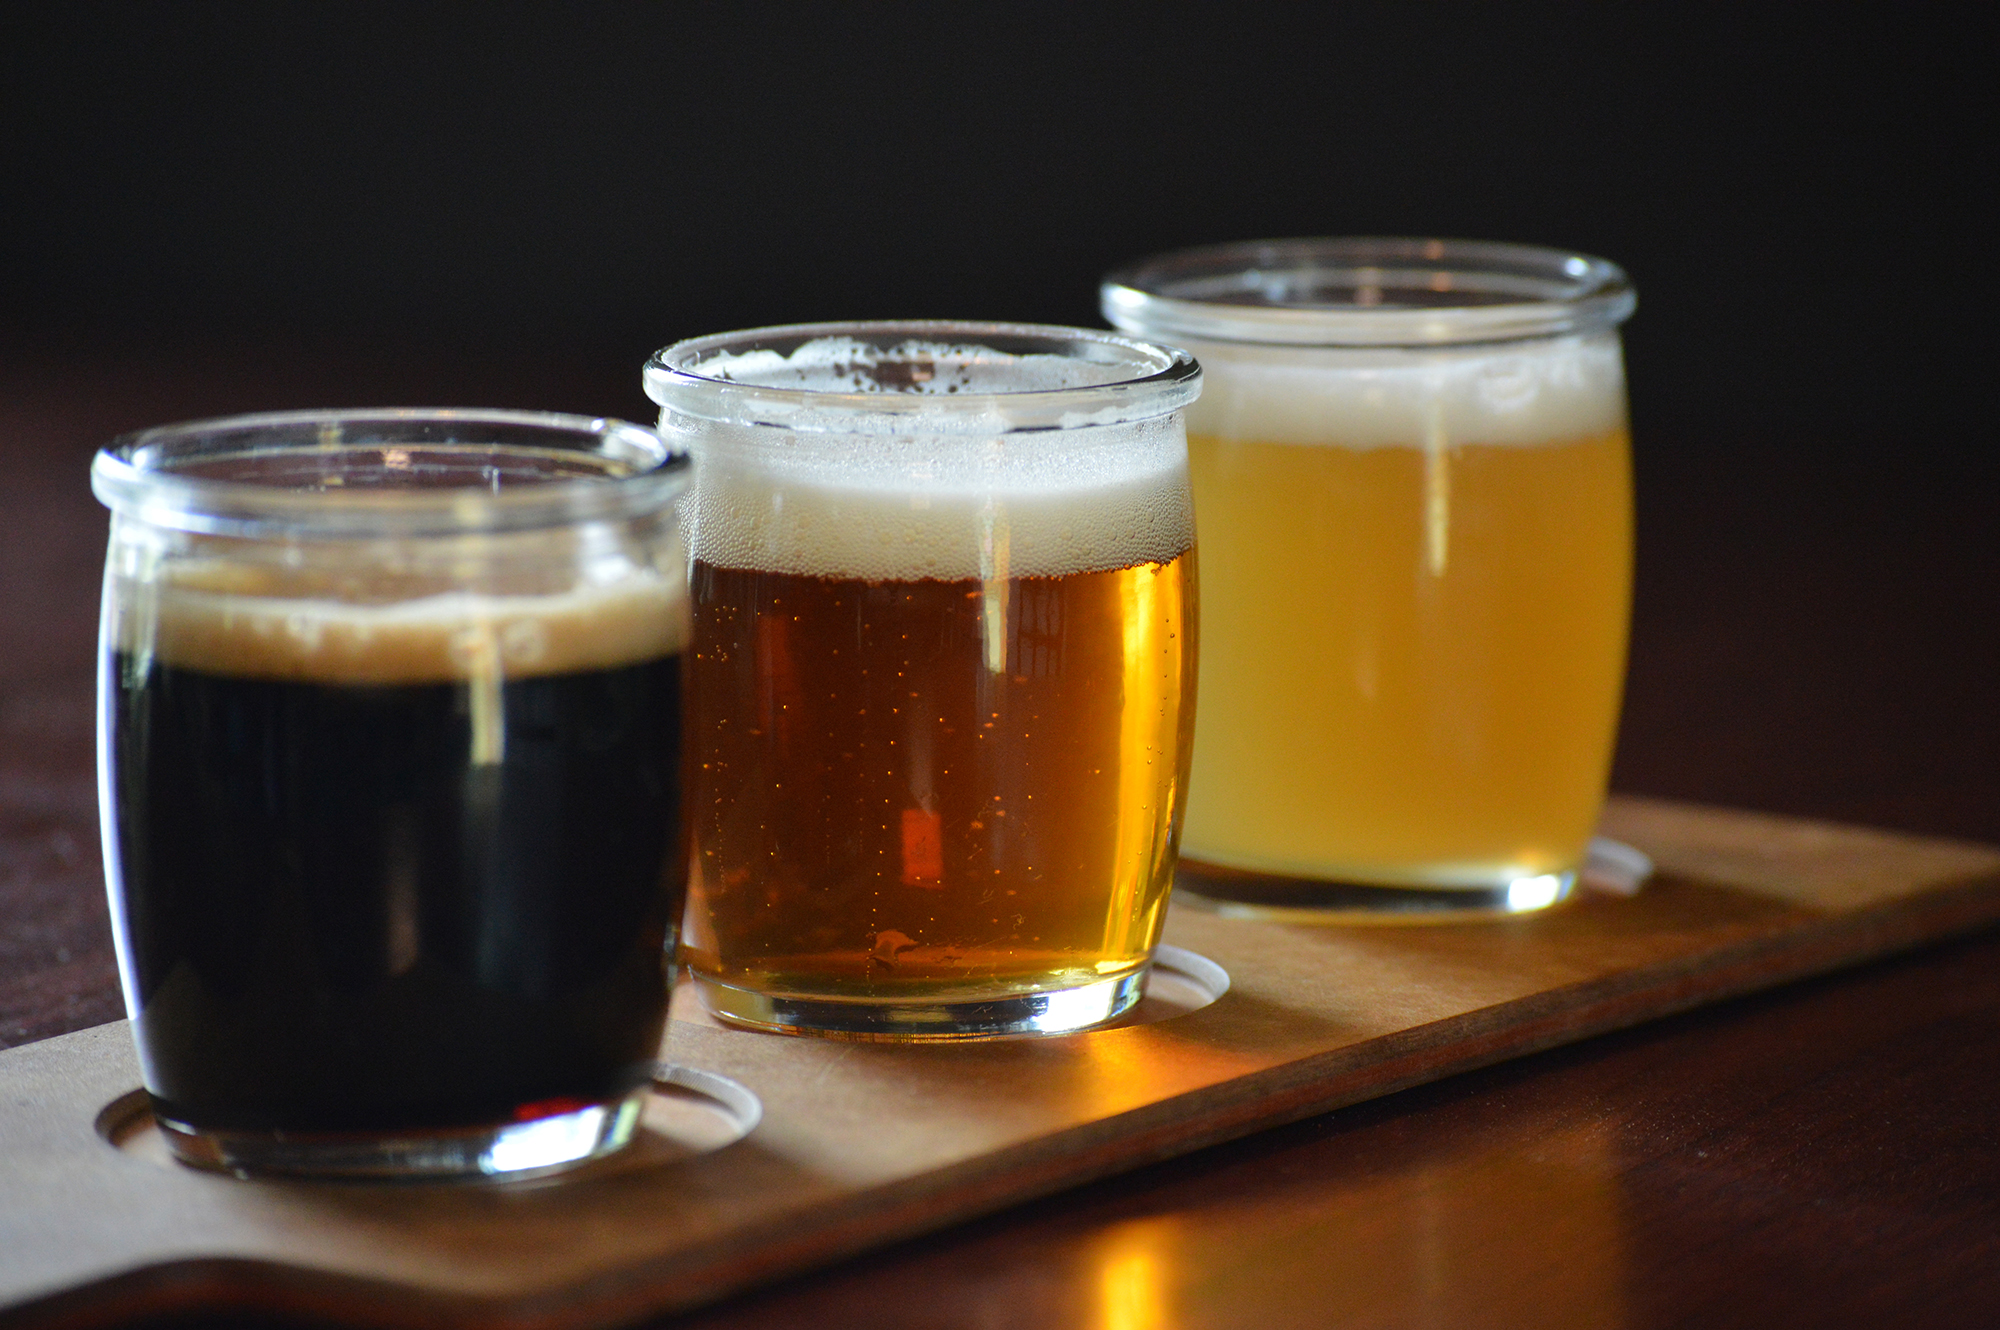 new! Beer FLights - Choose 3 of our 14 drafts to build your own beer flight. $5Tommyknocker Flight: Blood Orange IPA, Tundrabeary Ale. TK Root BeerAll IPA Flight: Bubble Stash IPA, Blood Orange, IPA, Voodoo Ranger Juicy Haze IPAColorado Only Flight: Colorado Native Amber Ale, Batch 19 Lager, Tommyknocker Tundrabeary